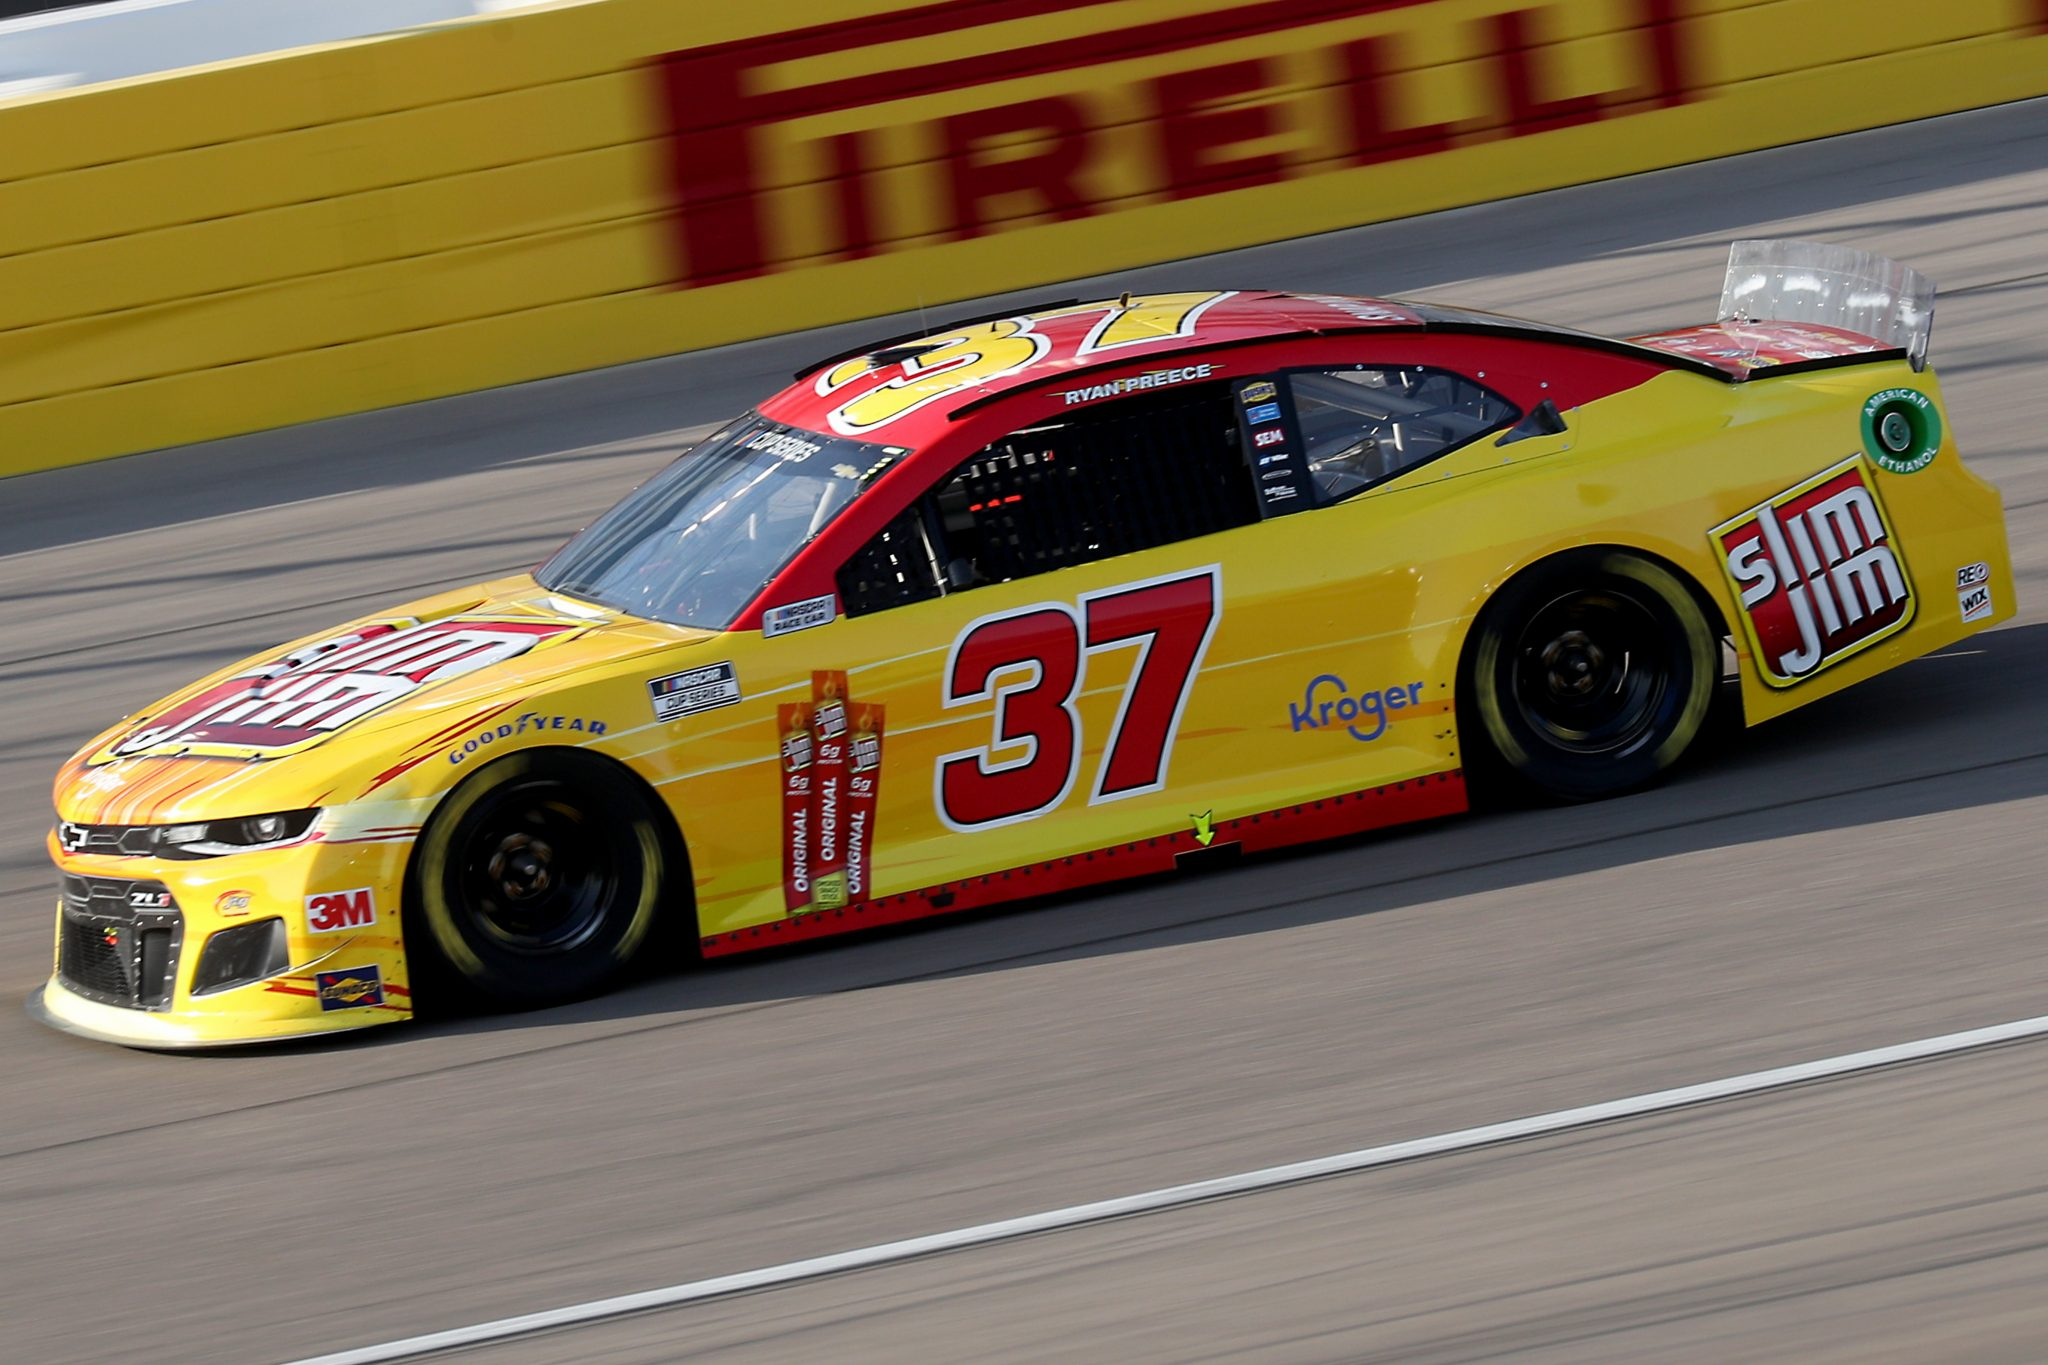 LAS VEGAS, NEVADA - SEPTEMBER 27: Ryan Preece, driver of the #37 Slim Jim Chevrolet, drives during the NASCAR Cup Series South Point 400 at Las Vegas Motor Speedway on September 27, 2020 in Las Vegas, Nevada. (Photo by Chris Graythen/Getty Images) | Getty Images